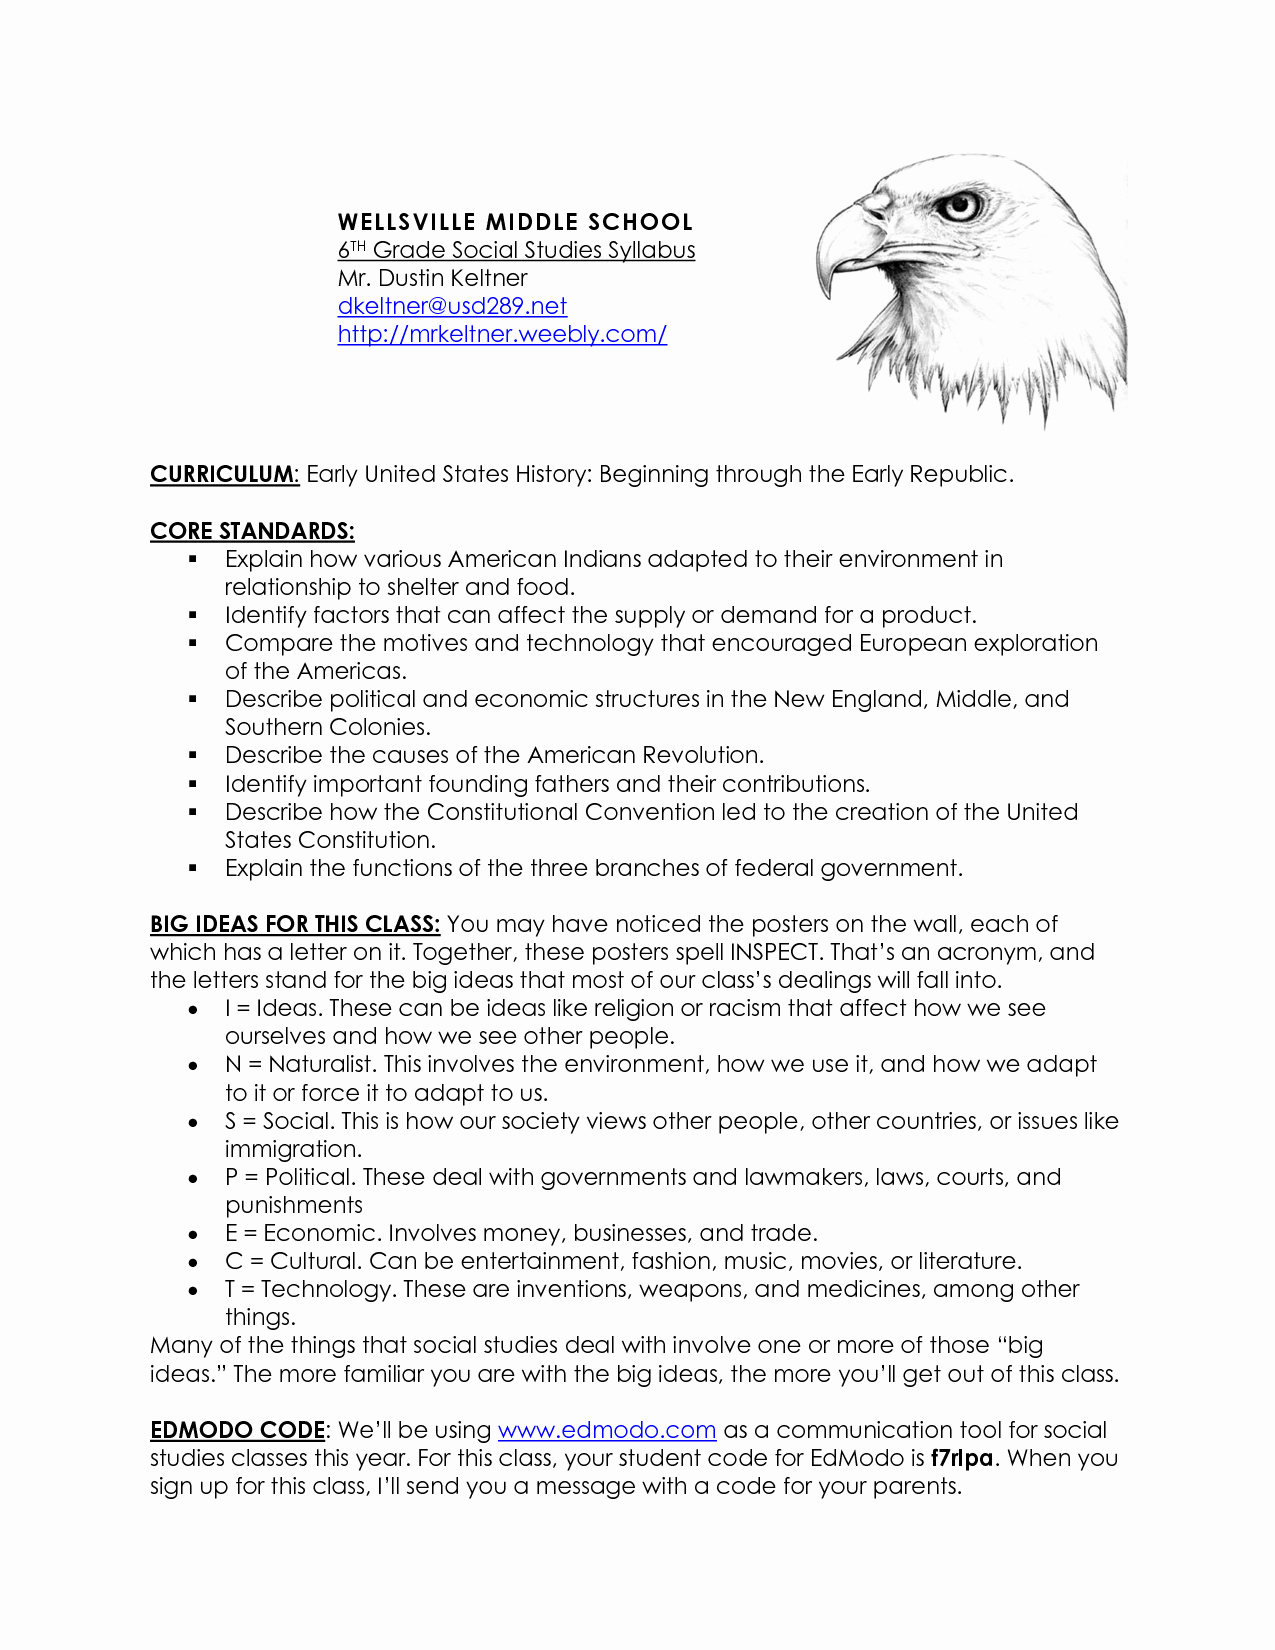 Middle School Science Syllabus Template Lovely Pay for Essay and Get the Best Paper You Need Creative